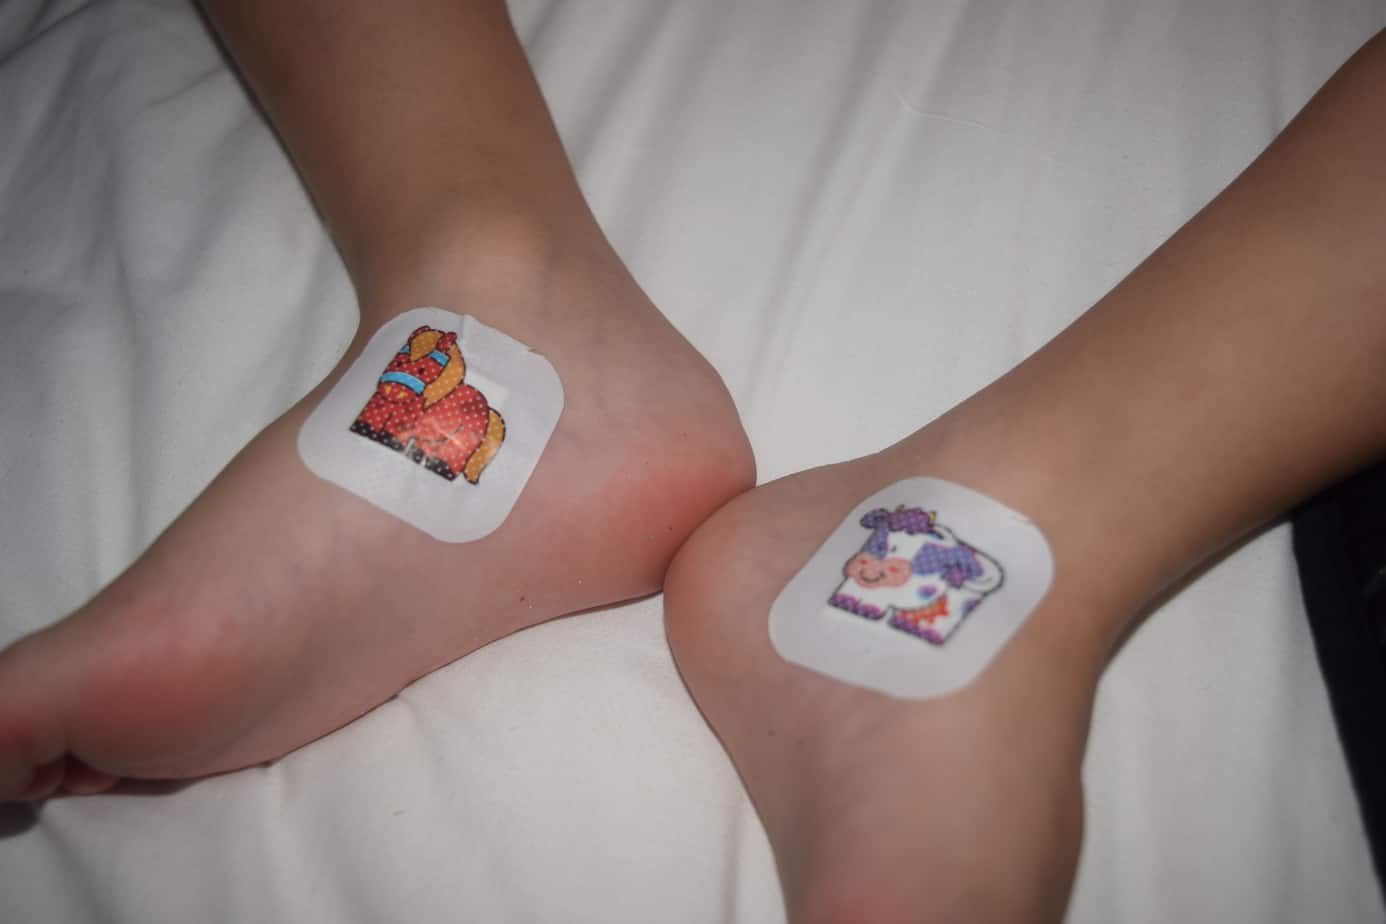 The plasters on W's feet that were provided in our ouch pouch